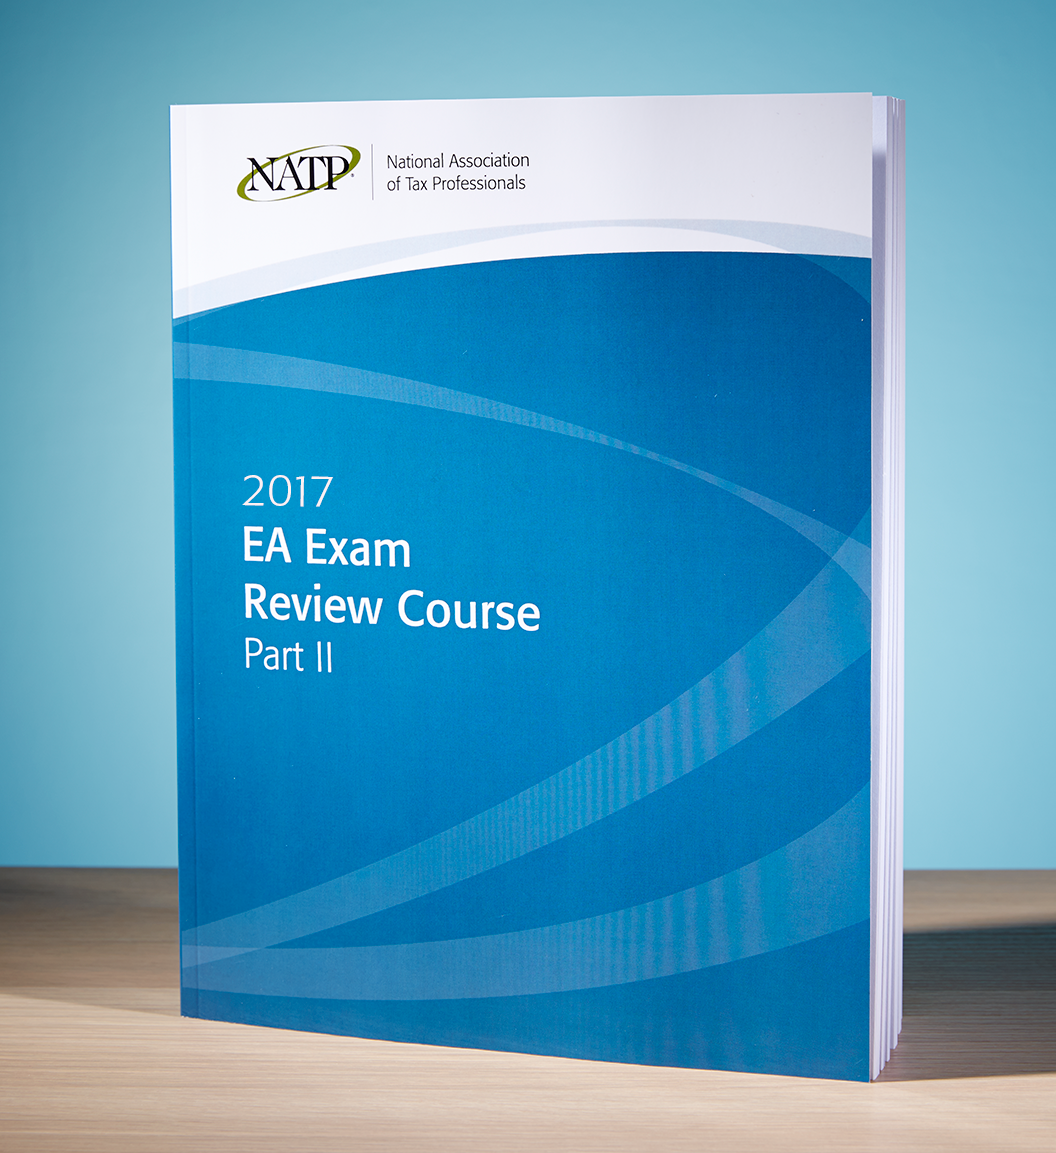 EA Exam Review Course Part II Textbook (2017) - #3704